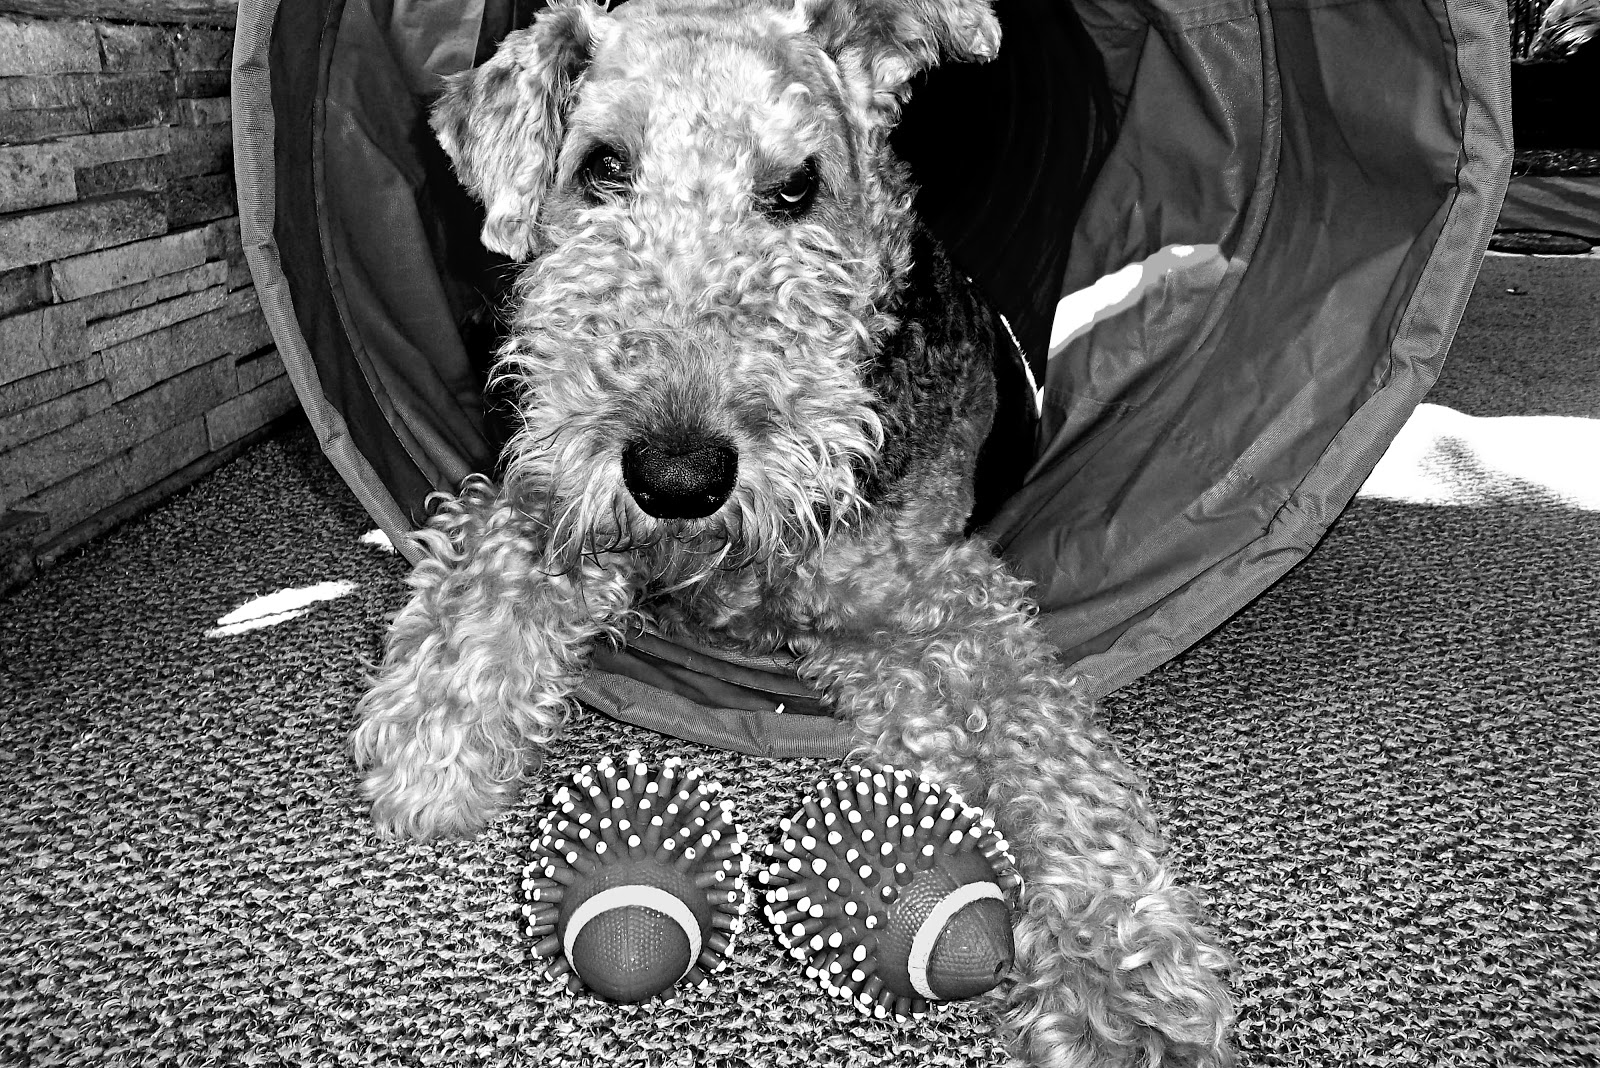 Ruby the Airedale: February 2013